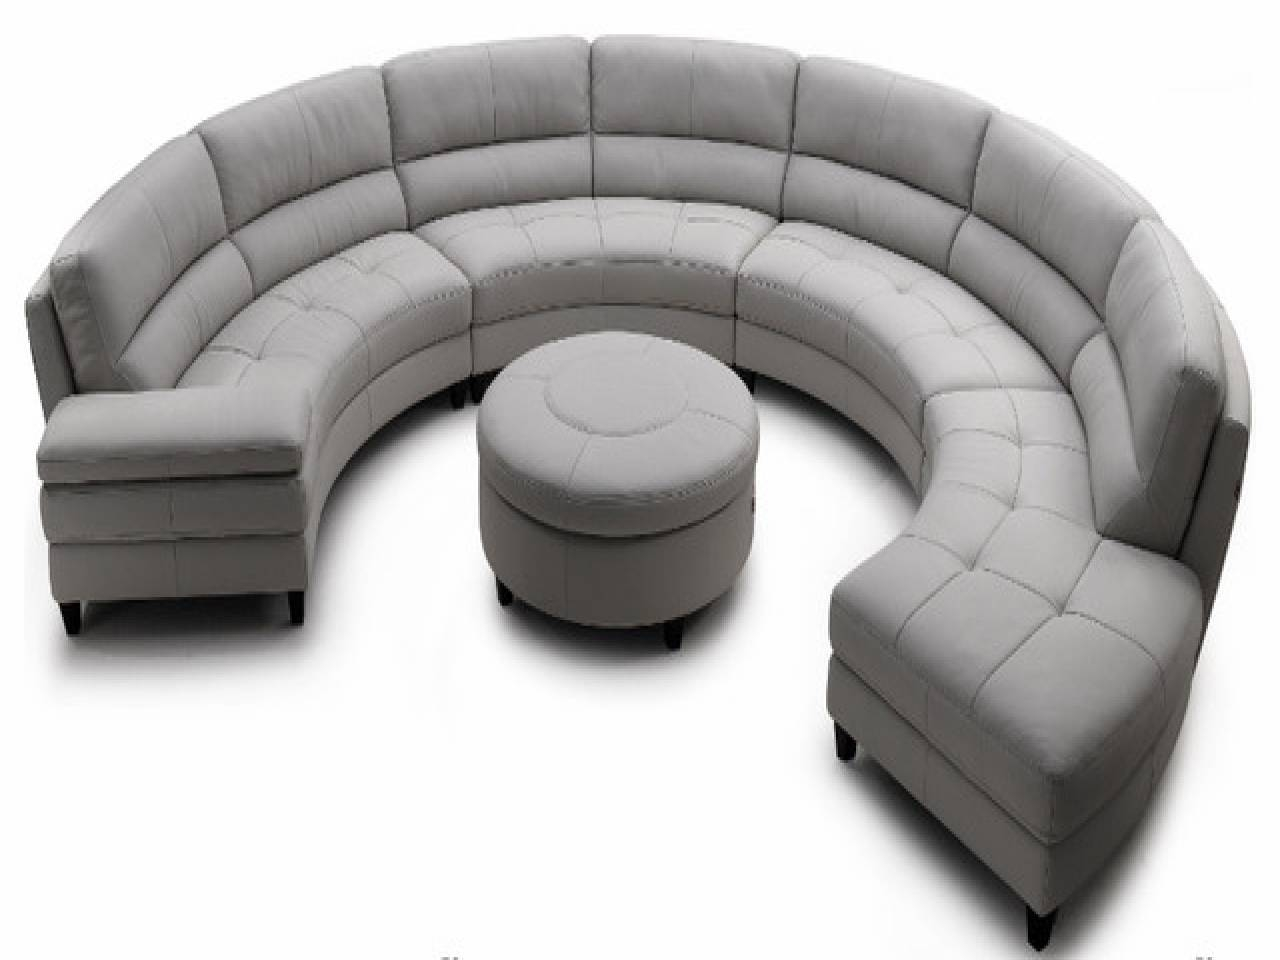 Sofas Center : Roundectionalofa Using Curved For An Exciting inside Round Sectional Sofa (Image 30 of 30)